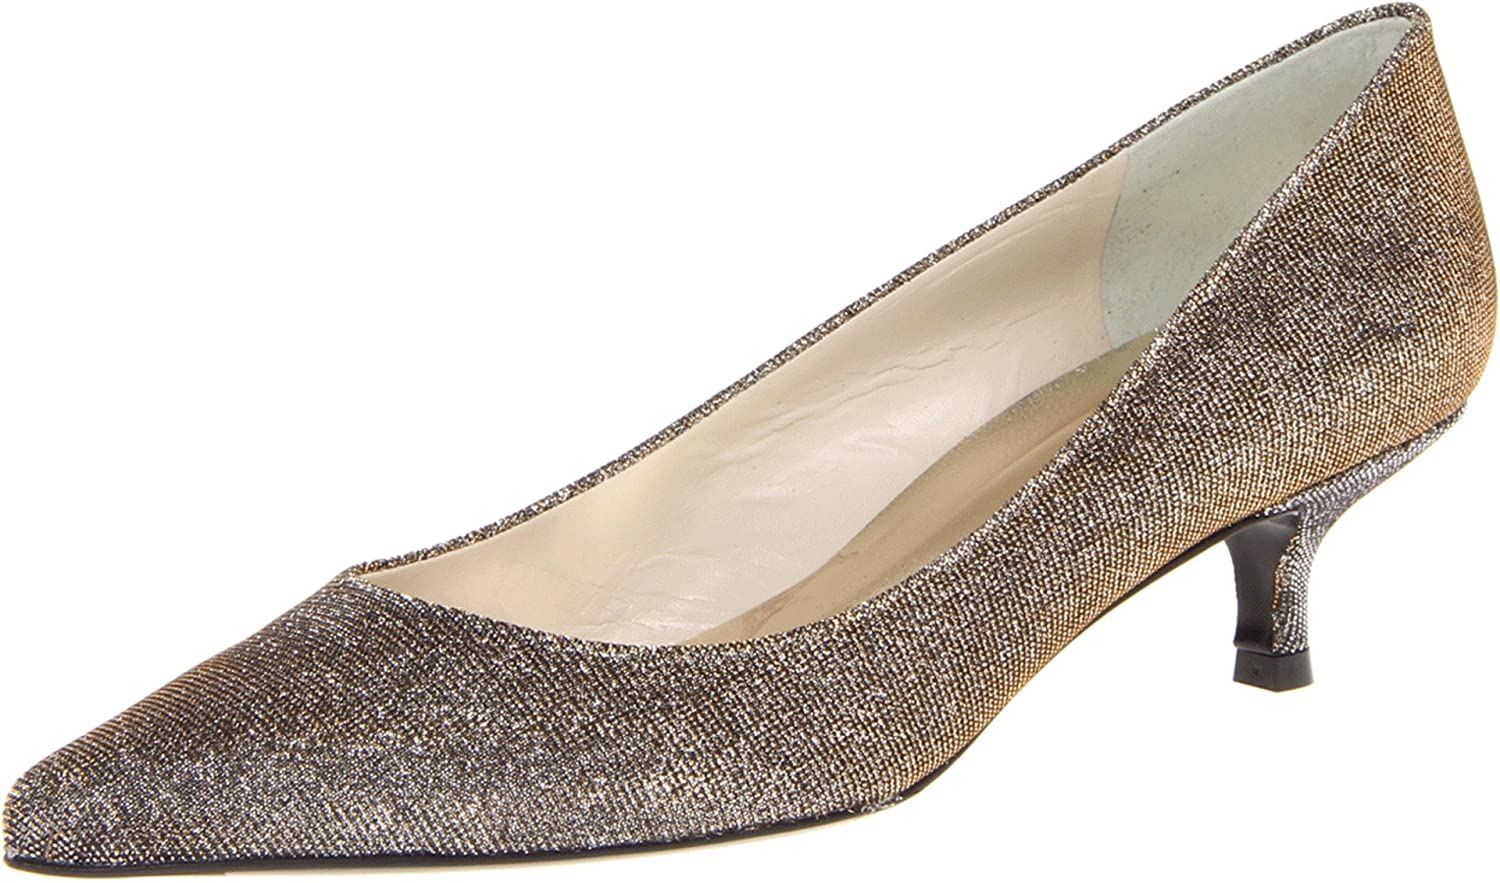 Stuart Weitzman Women's Poco Dress Pump B00BIQOETI 4.5 B(M) US|Pyrite Nocturn